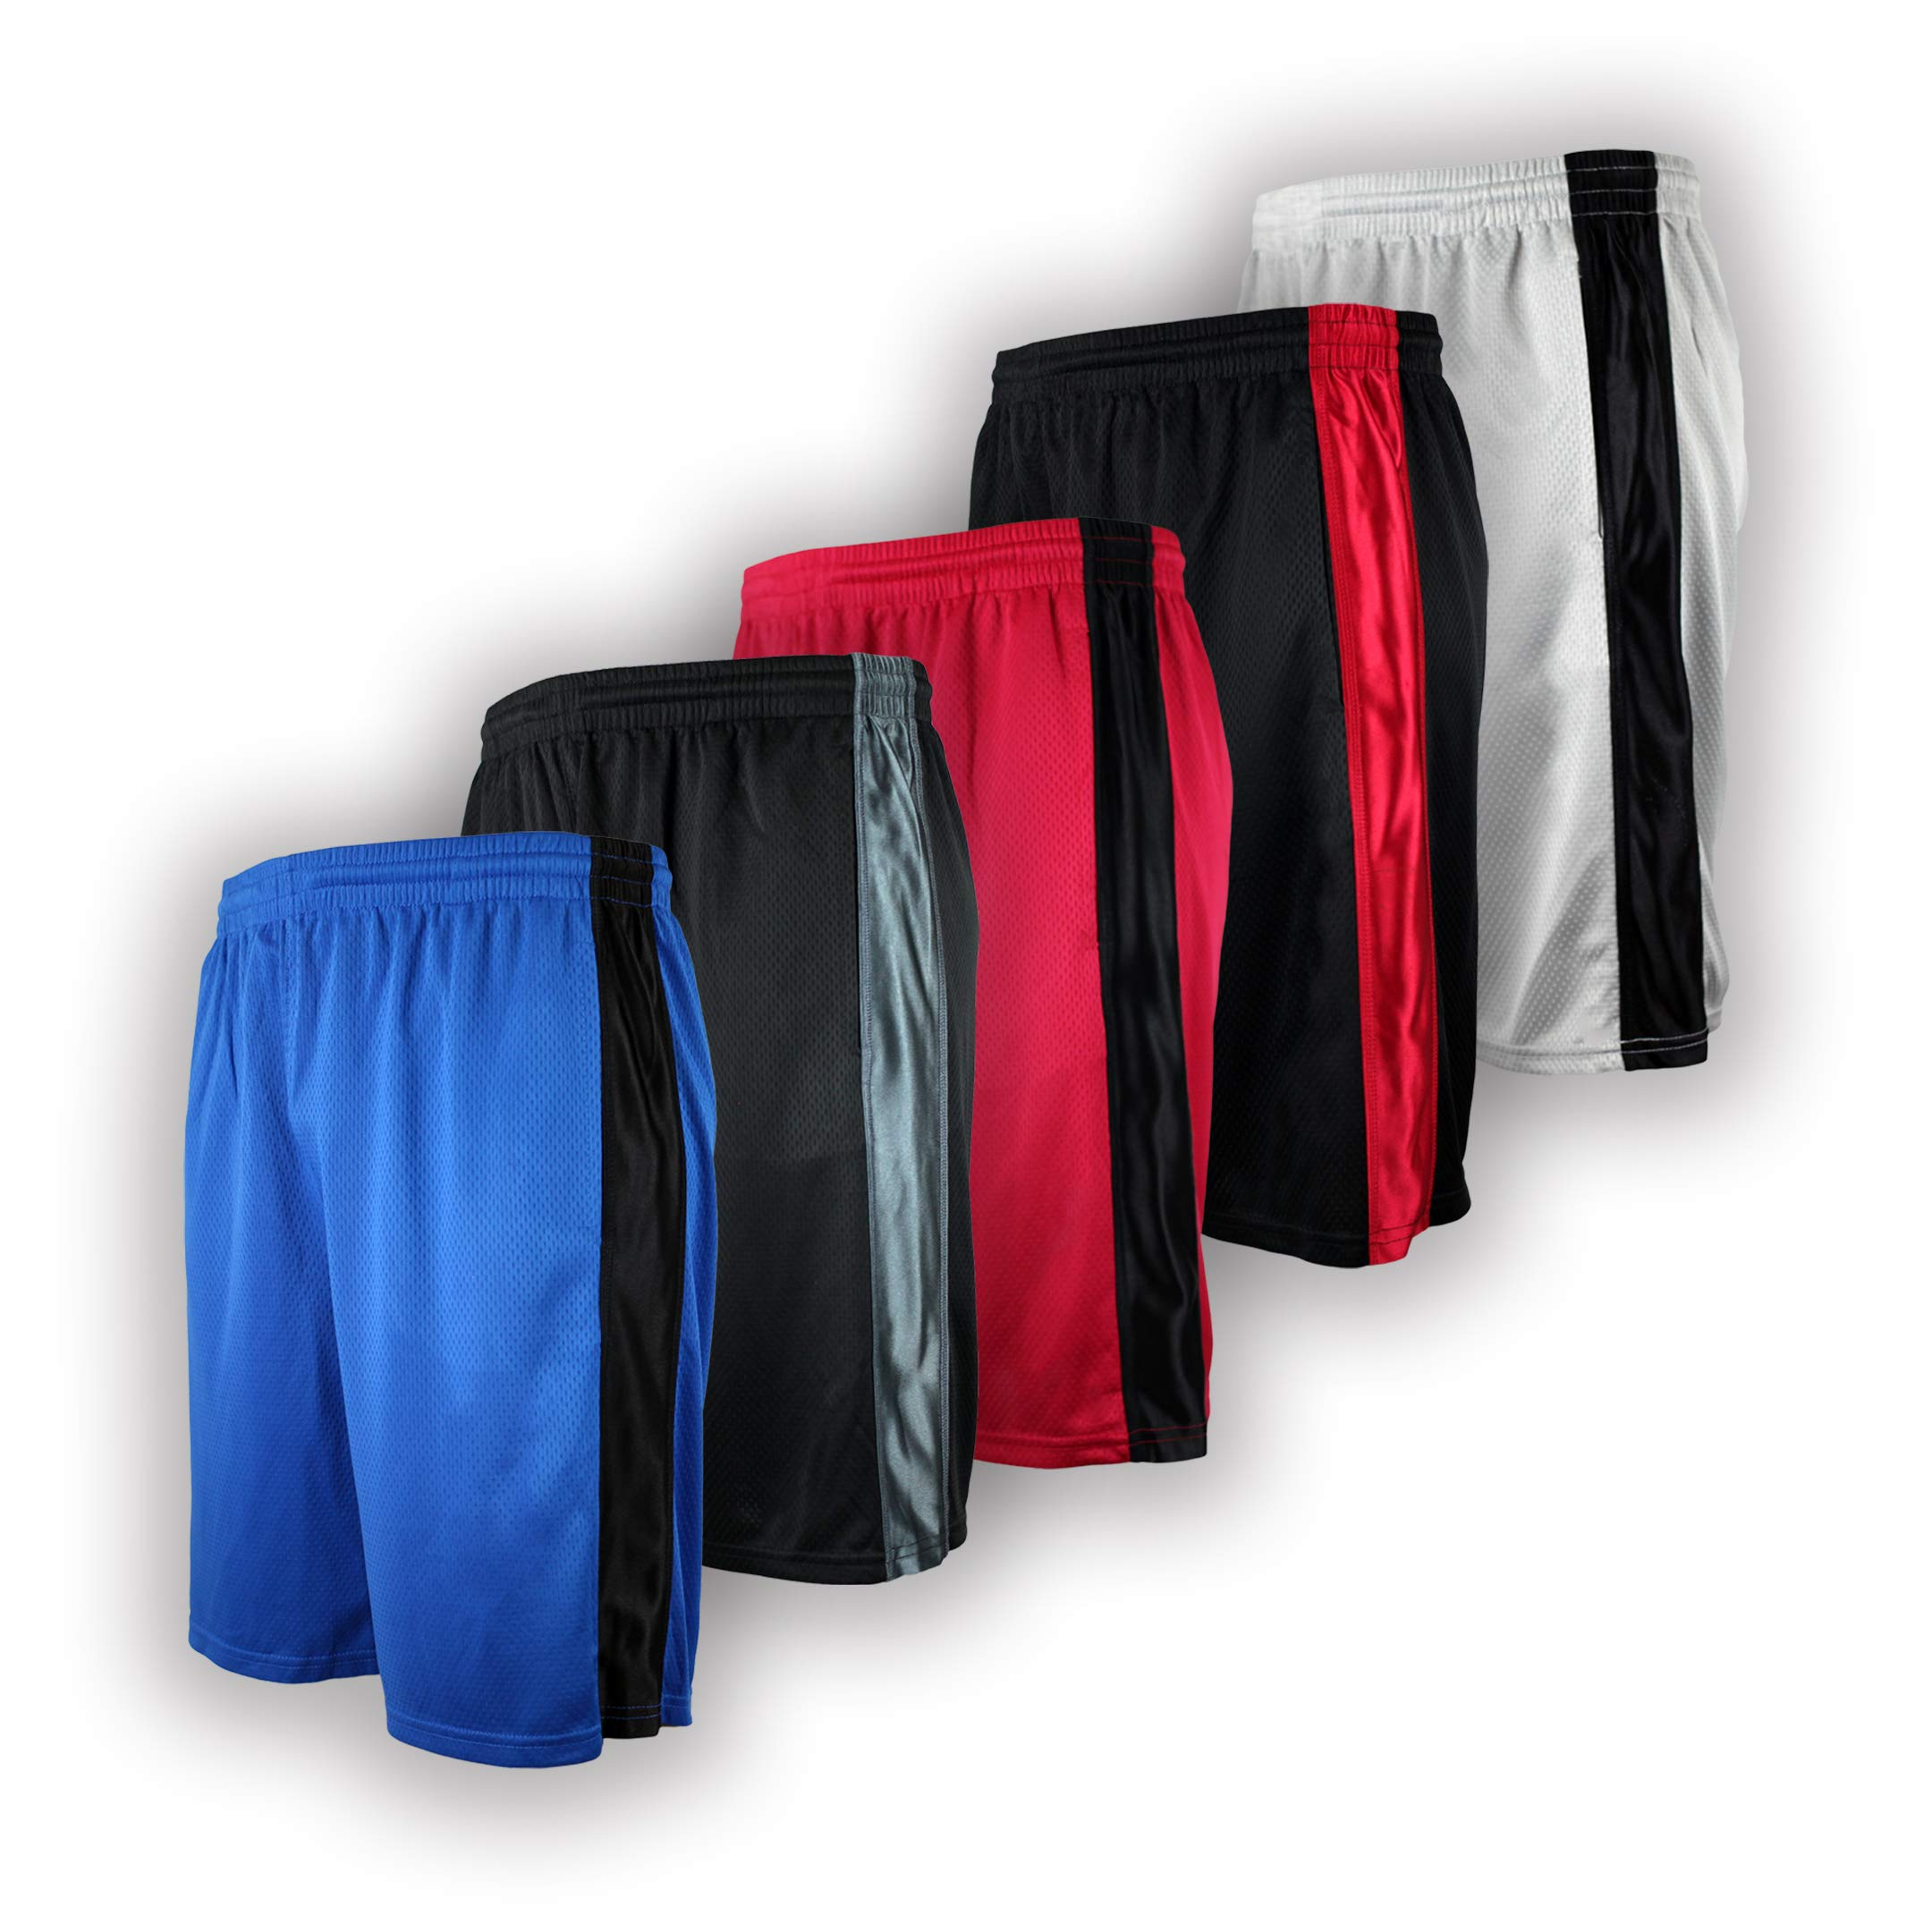 Men's Premium Active Athletic Performance Shorts with Pockets - 5 Pack (blk/Char, Grey, blk/red, red, Royal, 4X-Large)